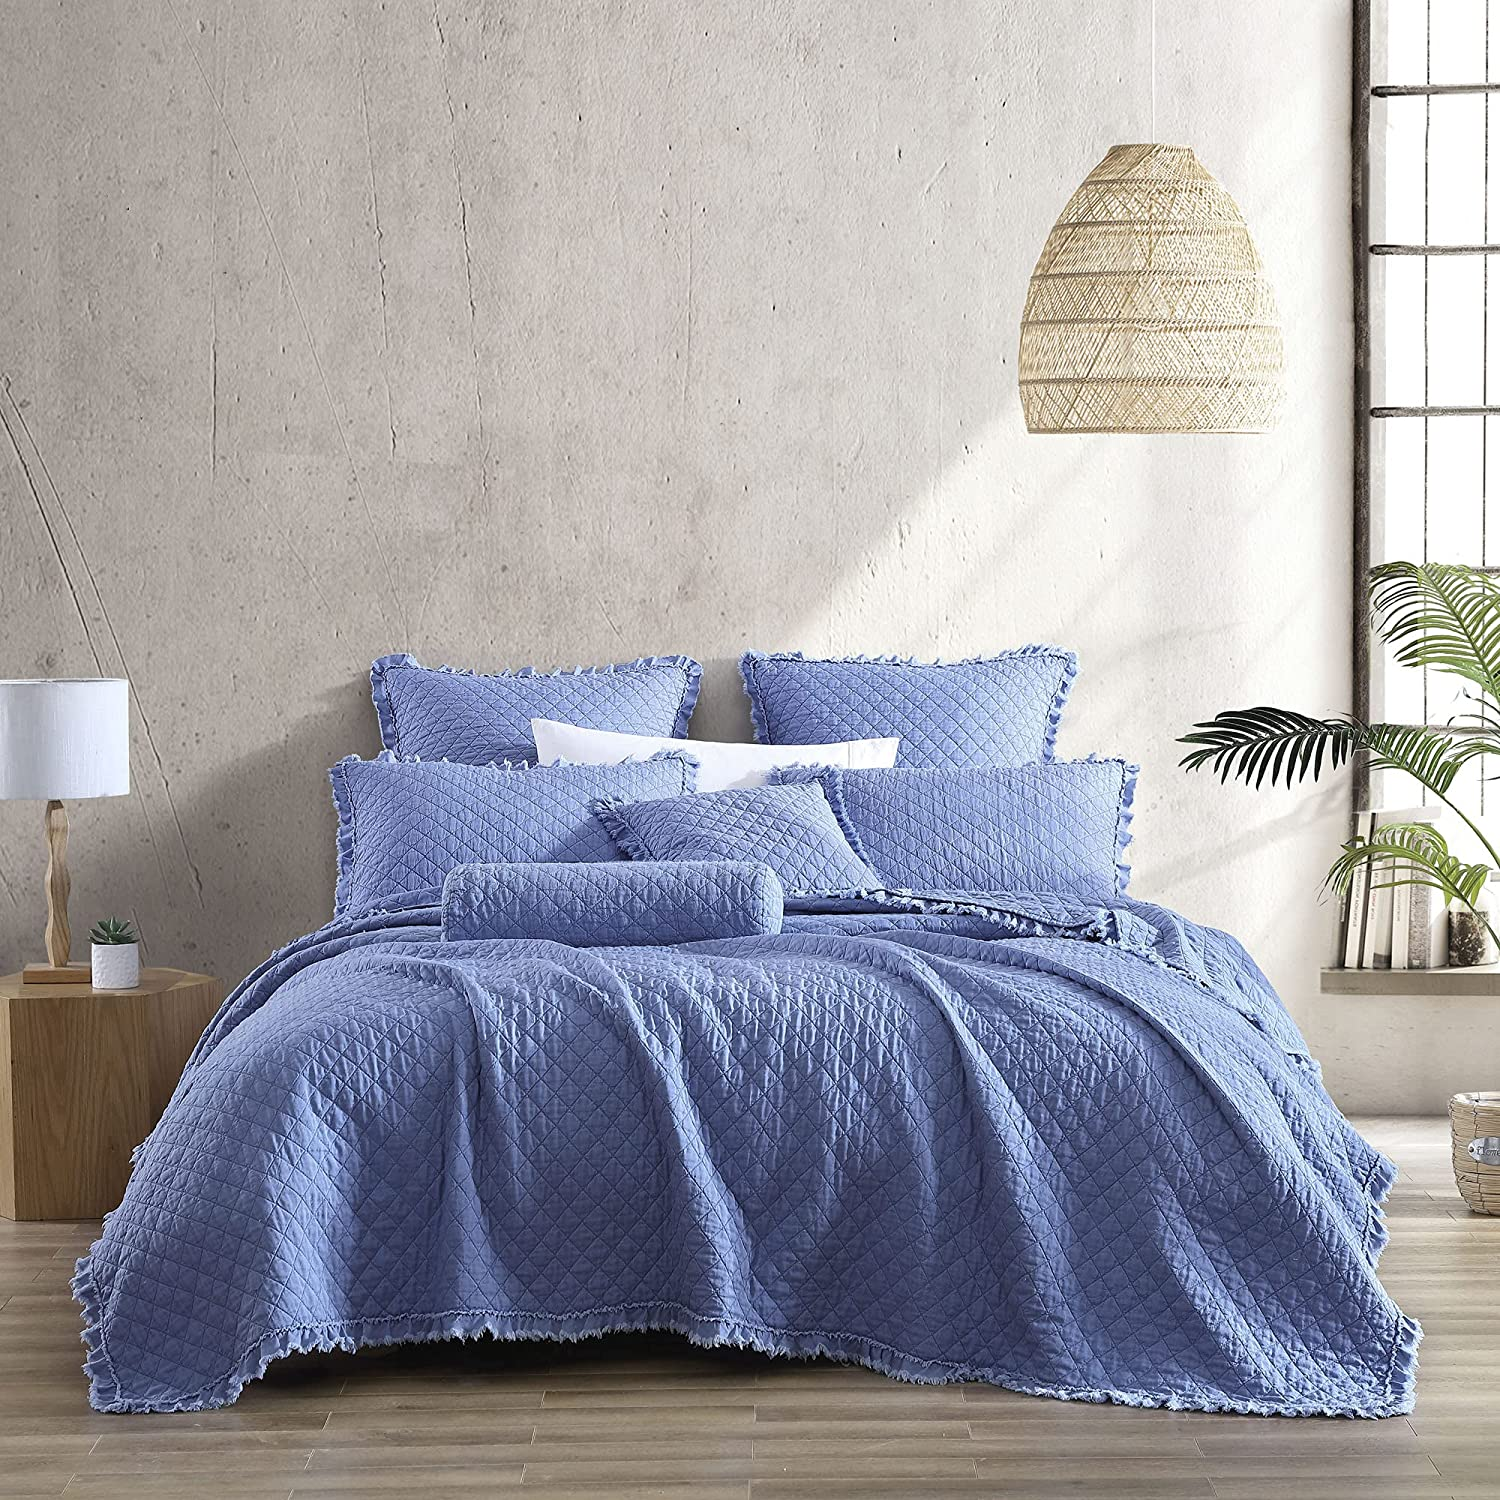 Brielle Home Ravi Stone Long Beach Mall Washed Stitched Ranking TOP6 Solid Set Diamond Quilt